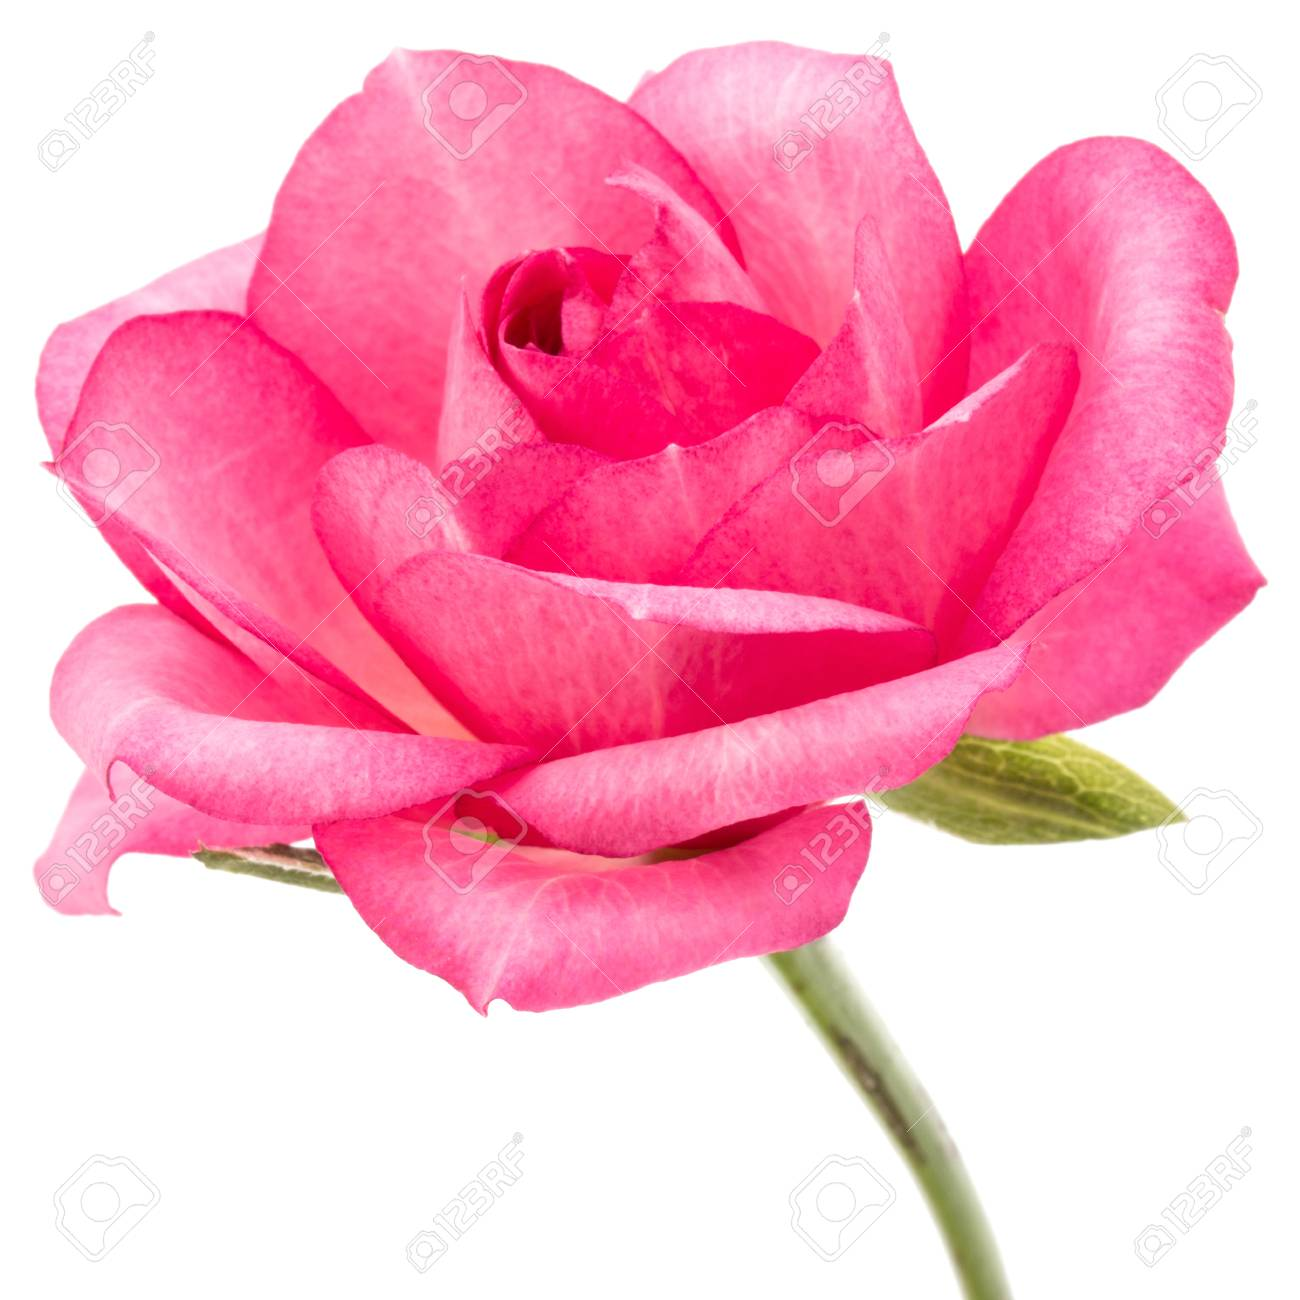 One pink rose flower isolated on white background cutout stock photo one pink rose flower isolated on white background cutout stock photo 87608982 mightylinksfo